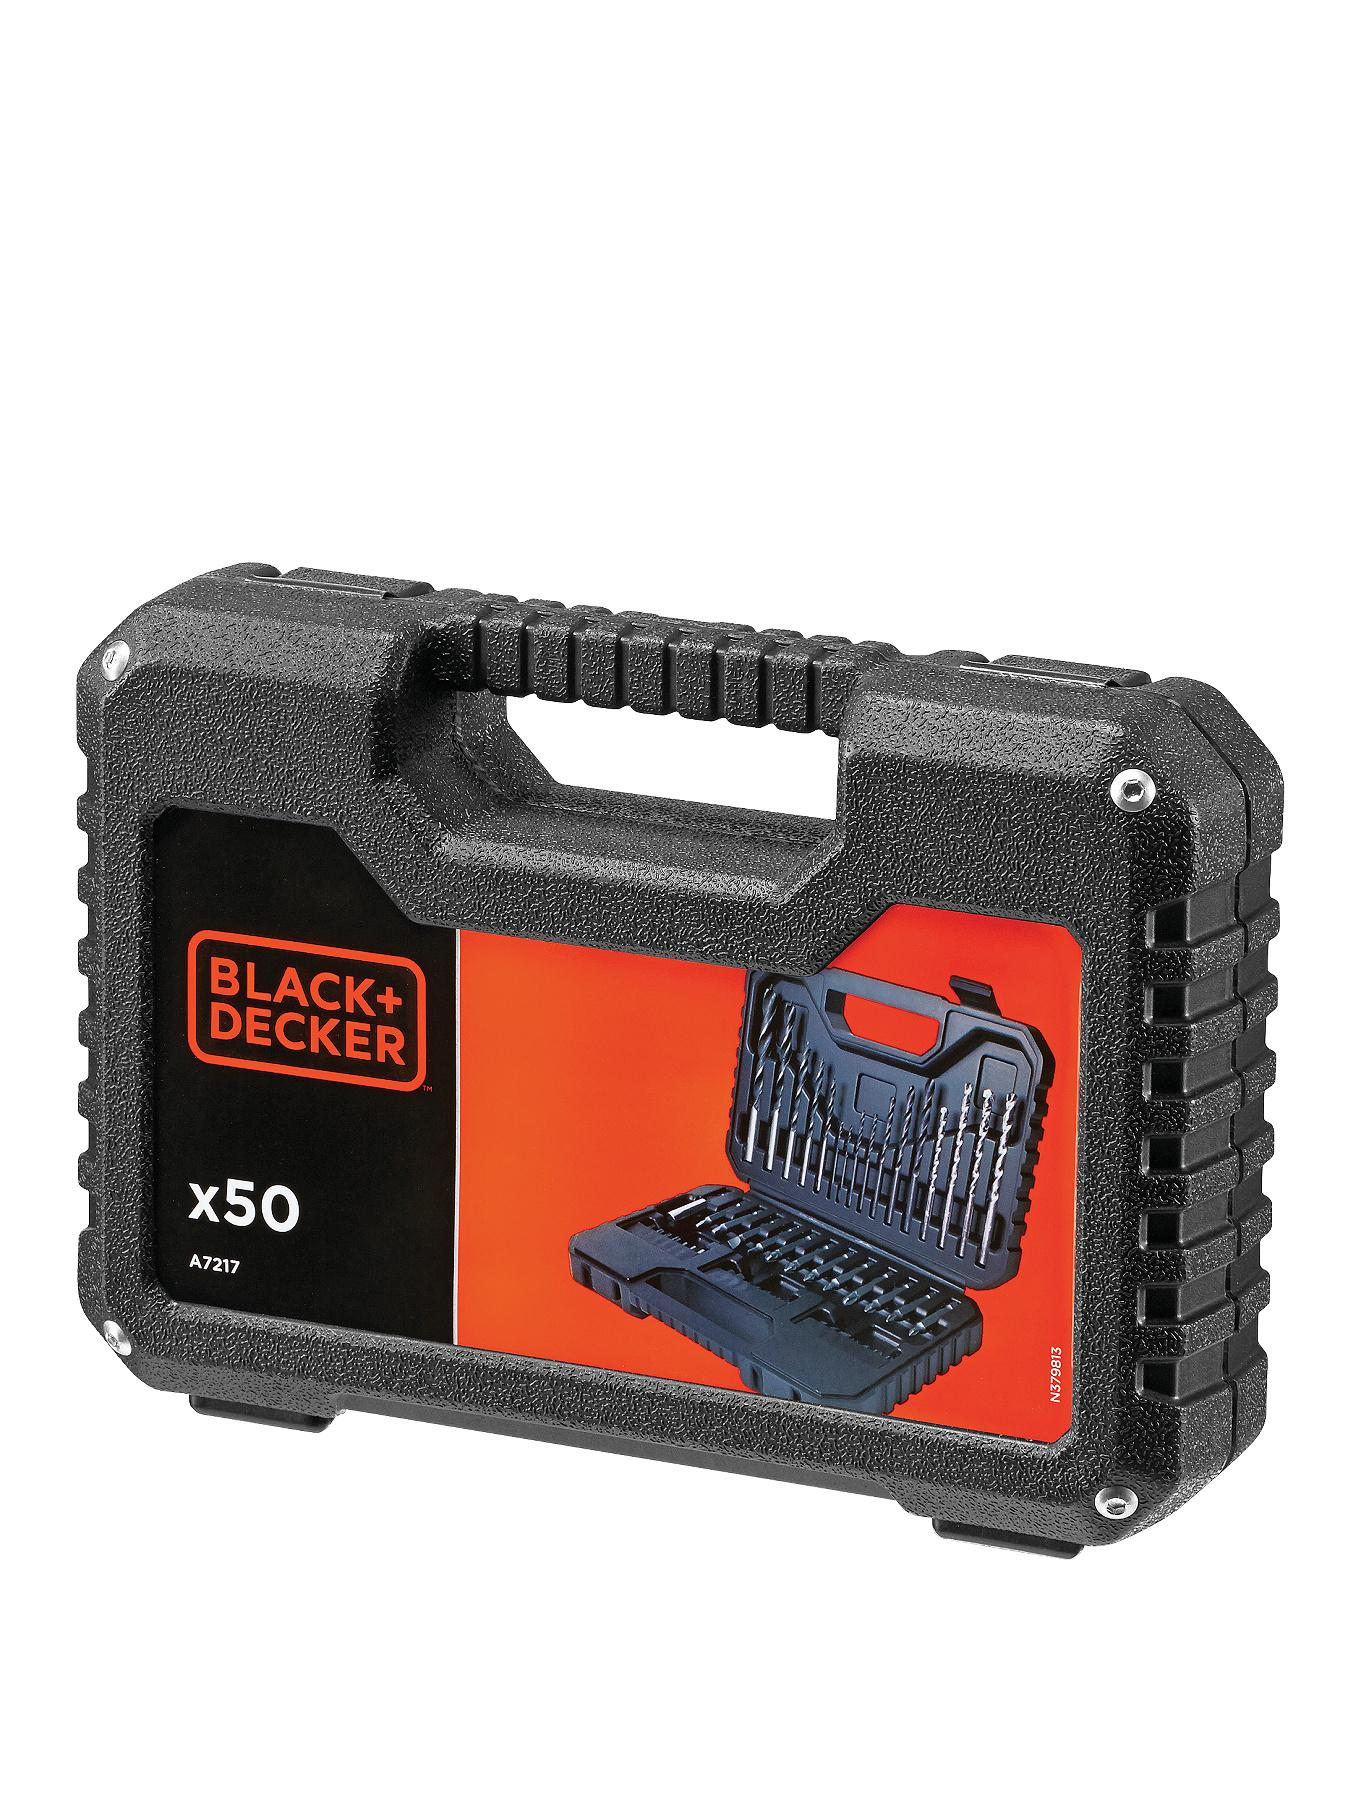 Black & Decker A7217-XJ 50-Piece Drilling and Screw Driving Set with Kitbox